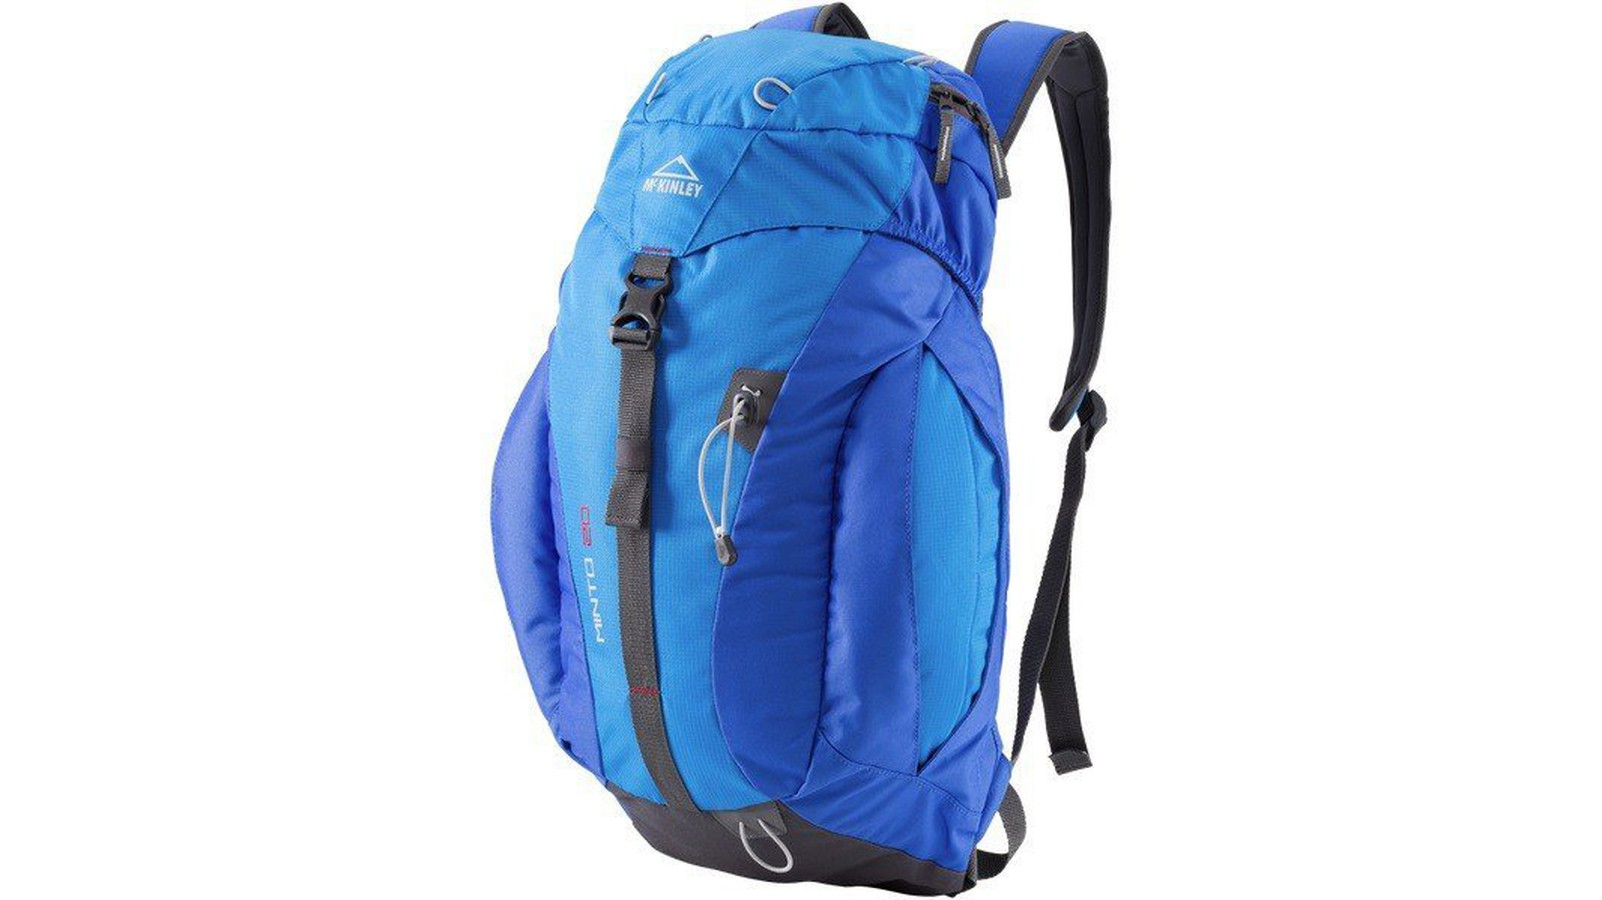 Balo Du Lịch Hiking Backpack Minto 20